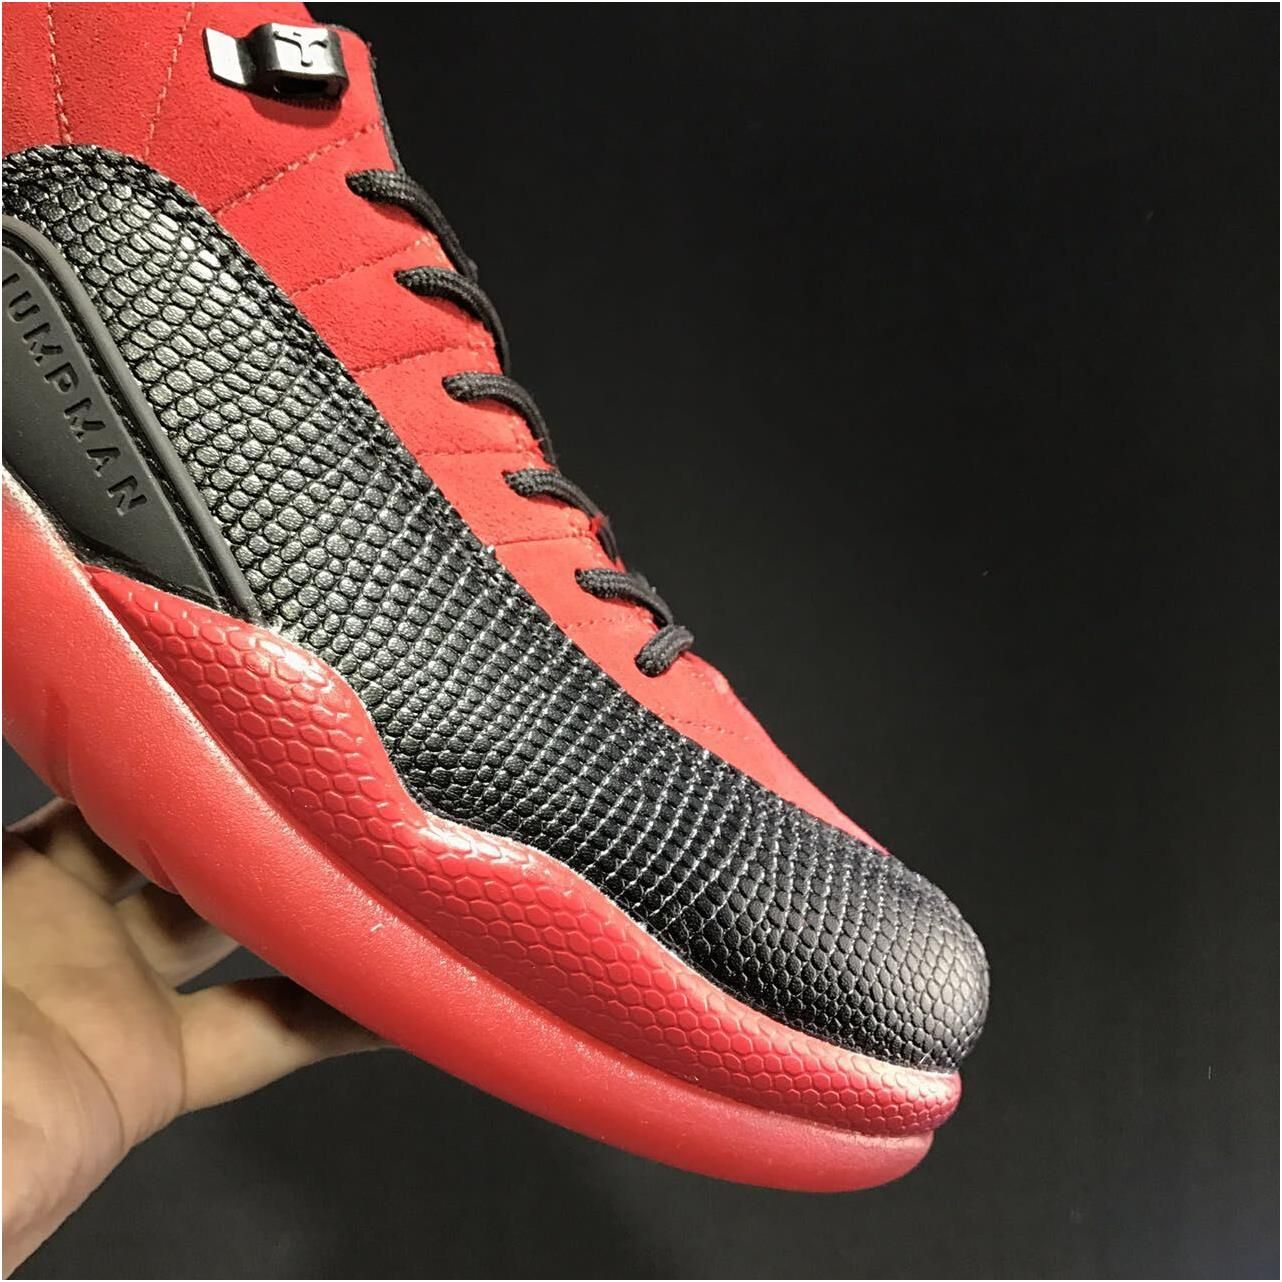 finest selection 9e6a9 62d3a Nike Air Jordan Retro XII 12 Low Red Black Men Shoes 3083171 ...